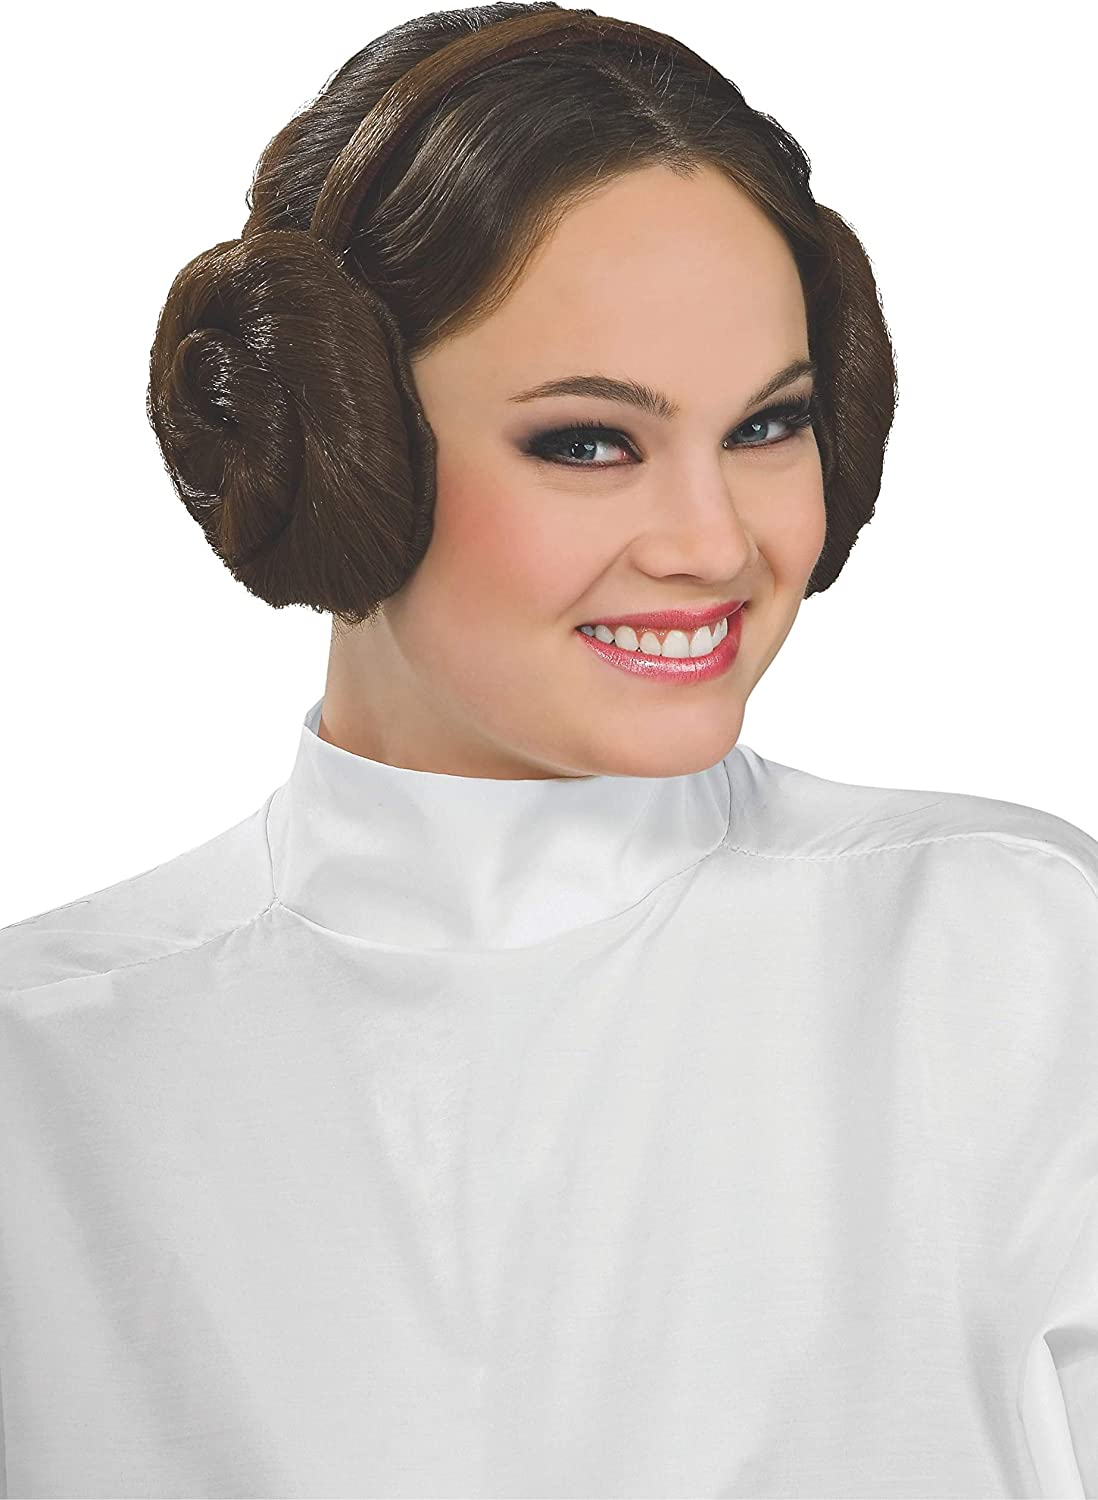 Star Wars - Peinado de Princesa Leia (Diadema): Amazon.es ...